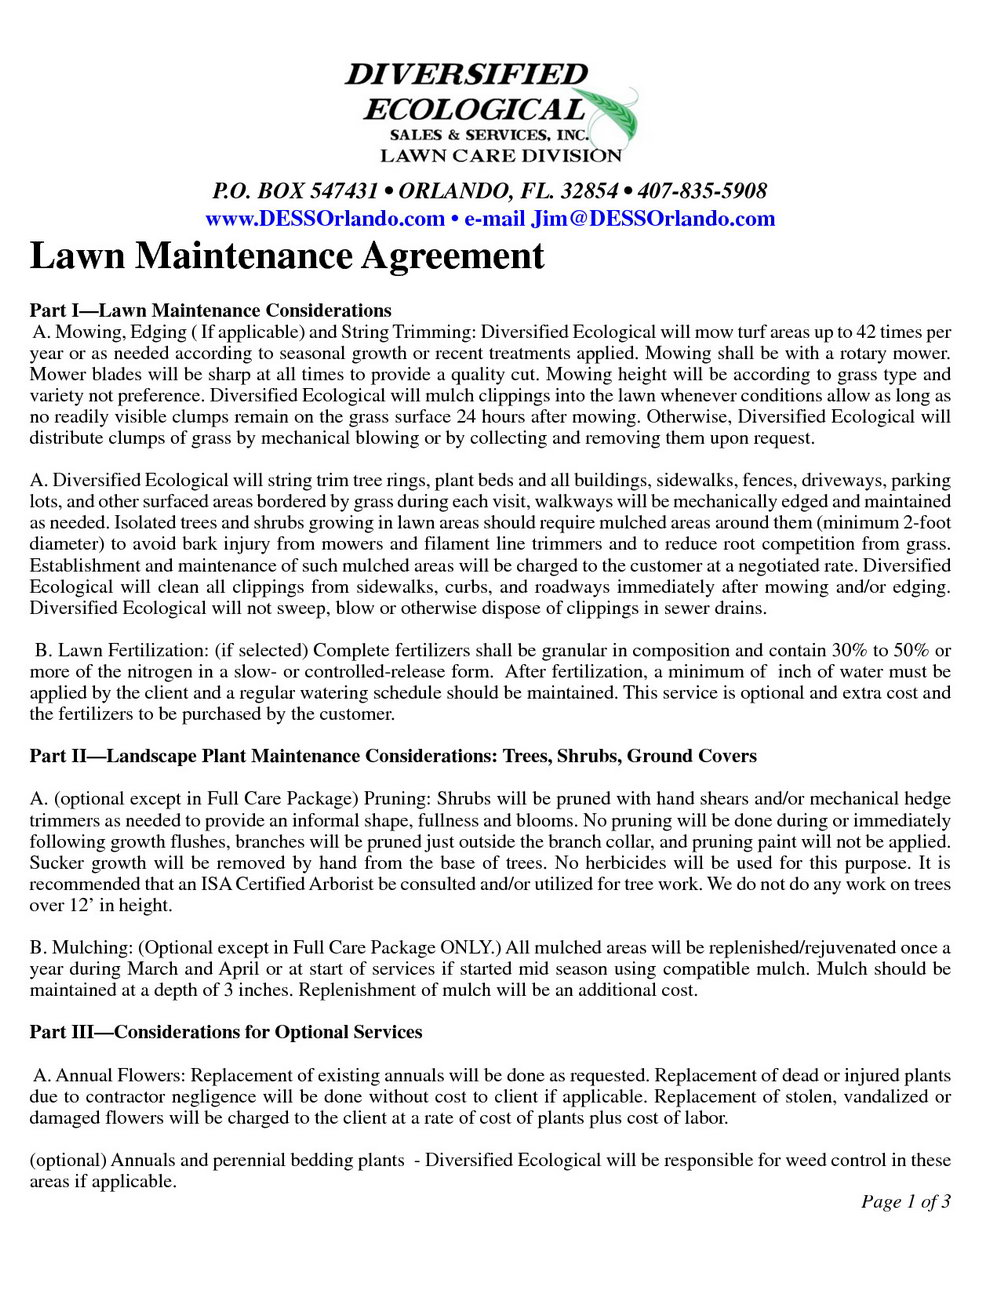 Free Lawn Care Contract Templates